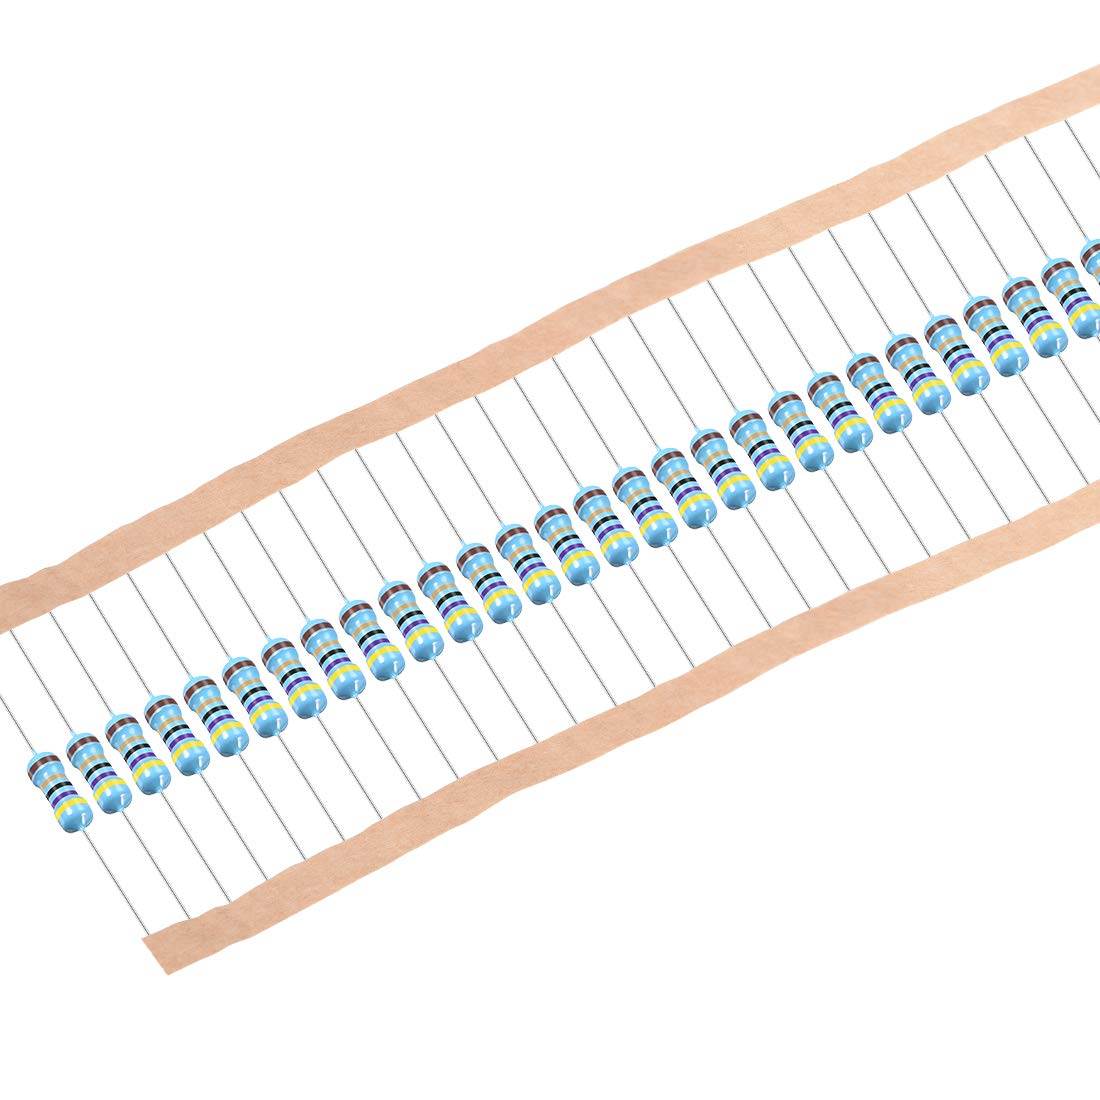 uxcell 100Pcs 47 Ohm Resistor, 1/2W 1% Tolerance Metal Film Resistors, Axial Lead, 5 Bands for DIY Electronic Projects and Experiments